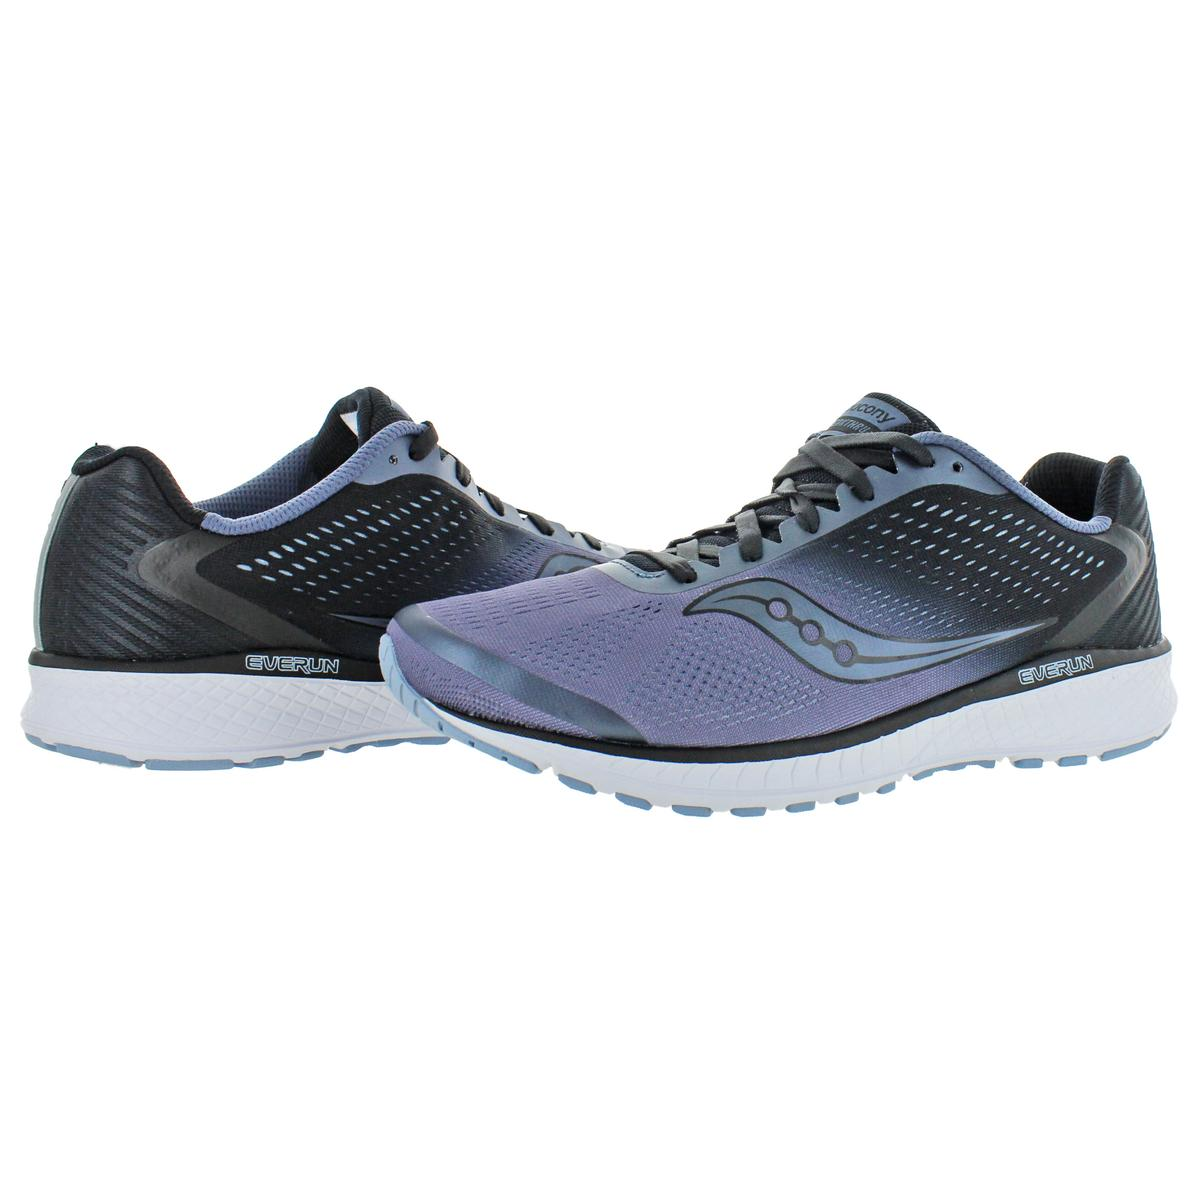 bf48ceda33b43 Details about Saucony Mens Breakthru 4 Everun Athletic Running Shoes  Sneakers BHFO 4994